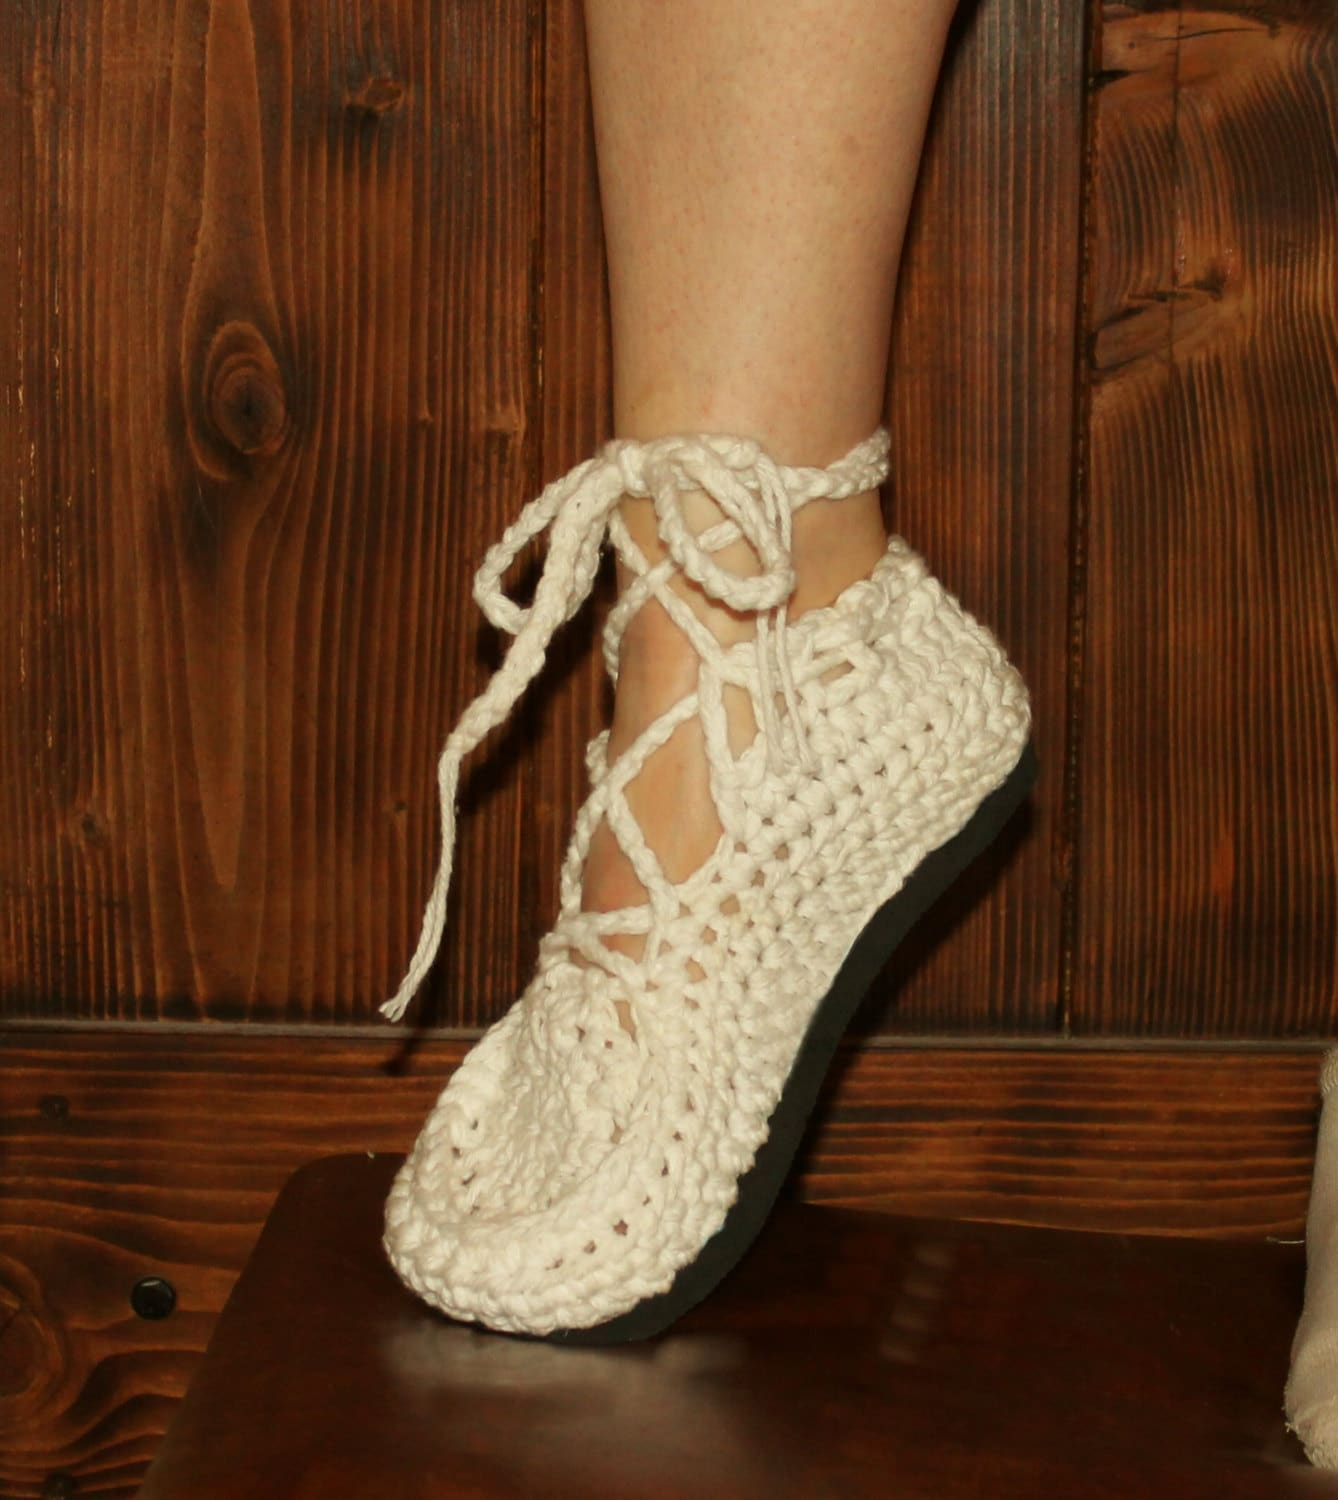 Crochet Sandals Pattern Medallion Lace Up